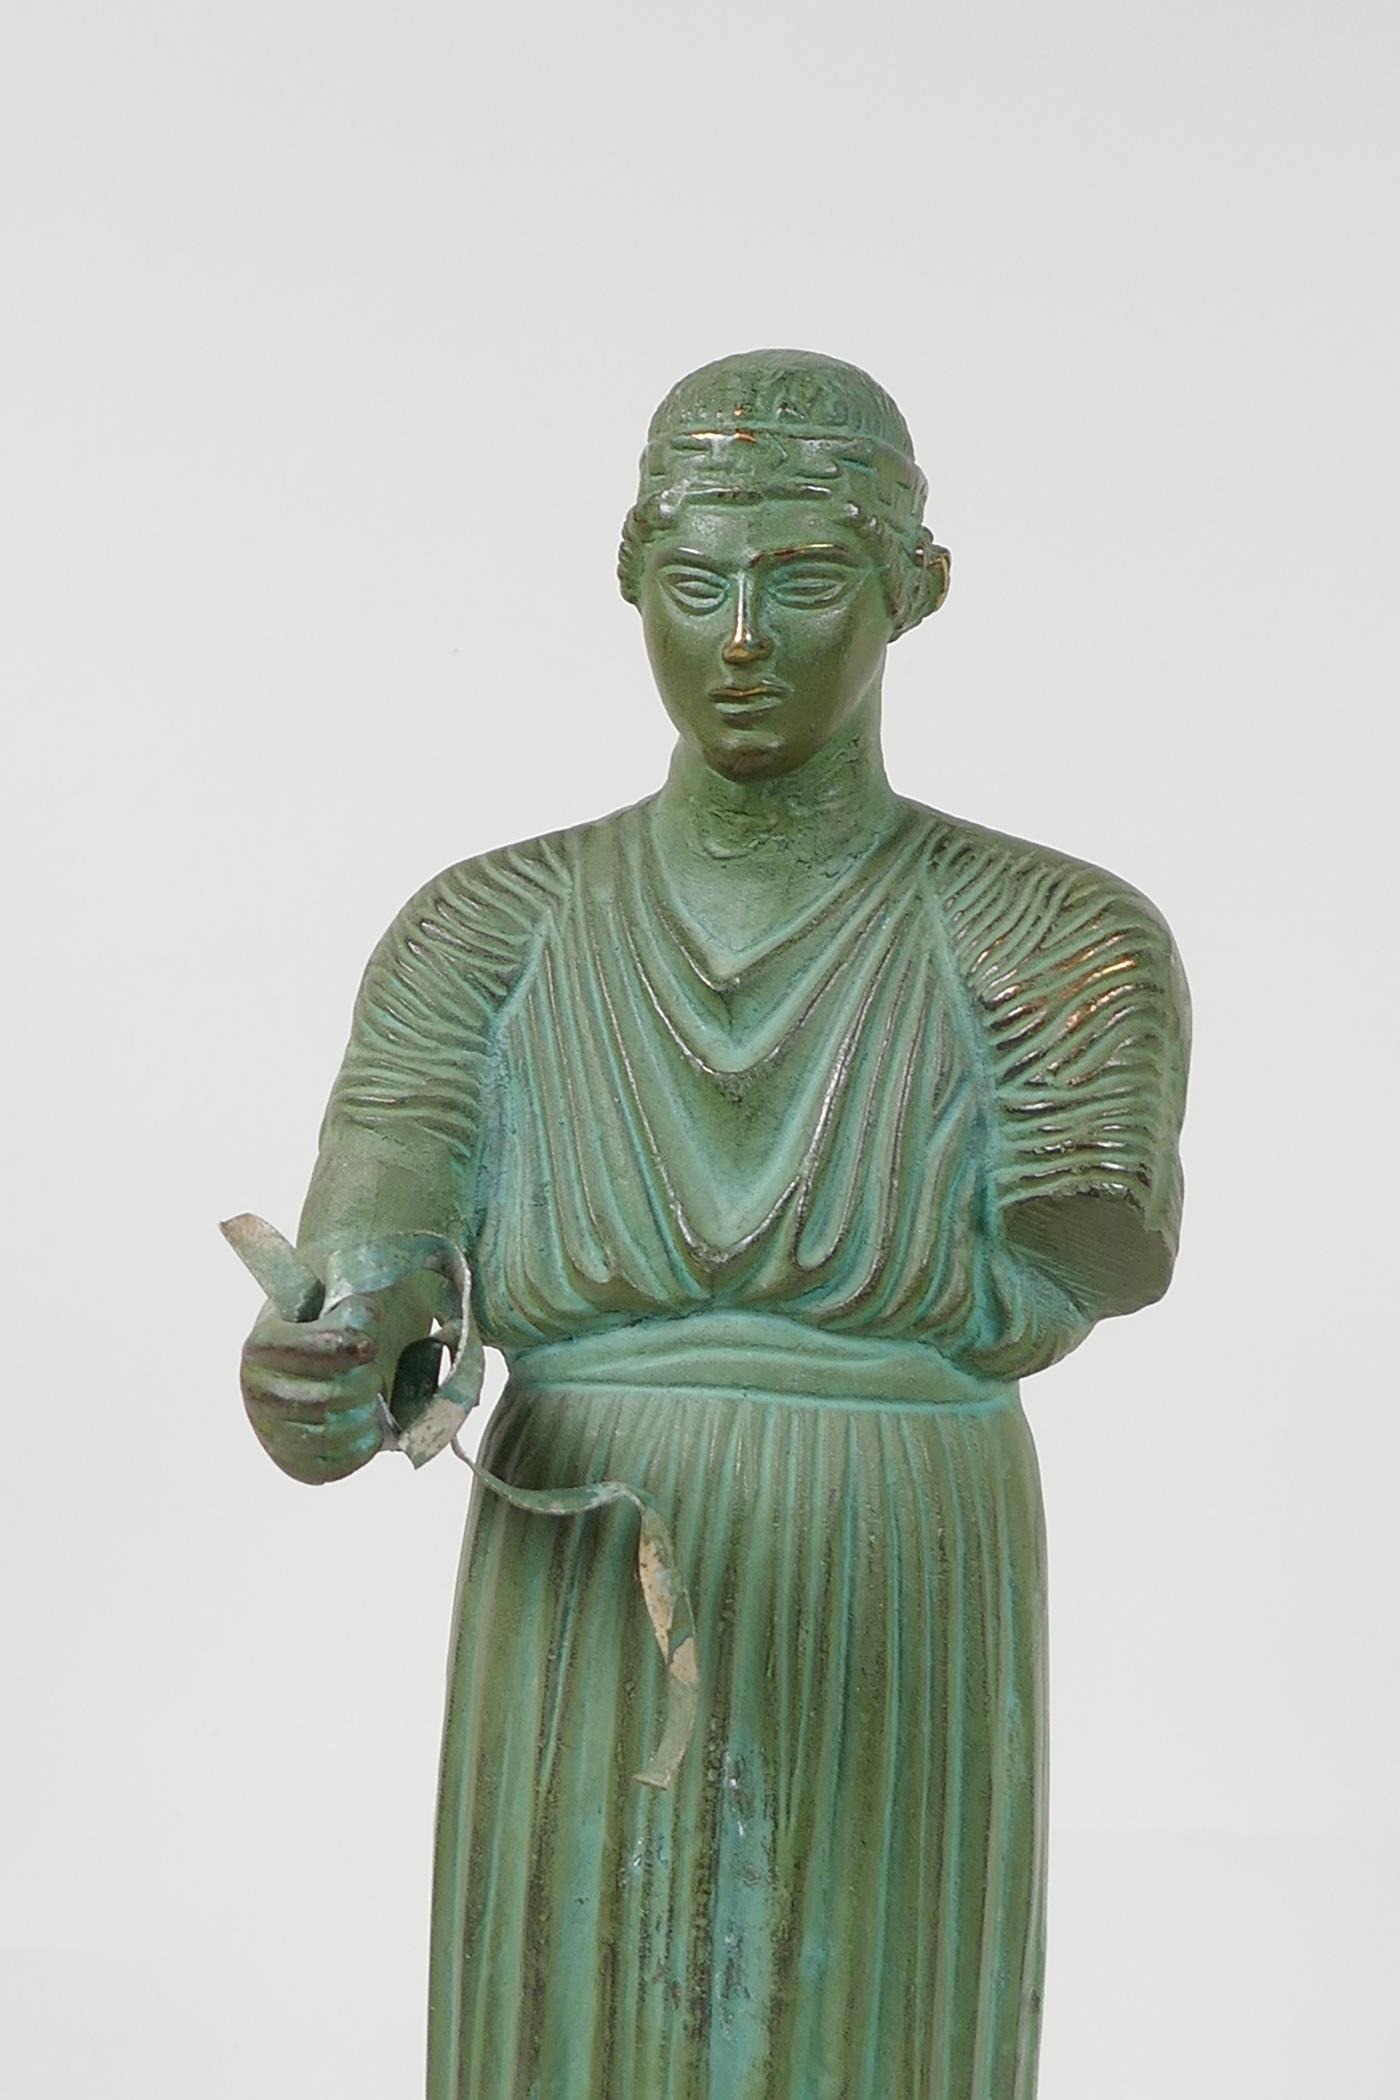 """A bronze figure of a Greek philospher, after the antique, 13½"""" high - Image 2 of 4"""